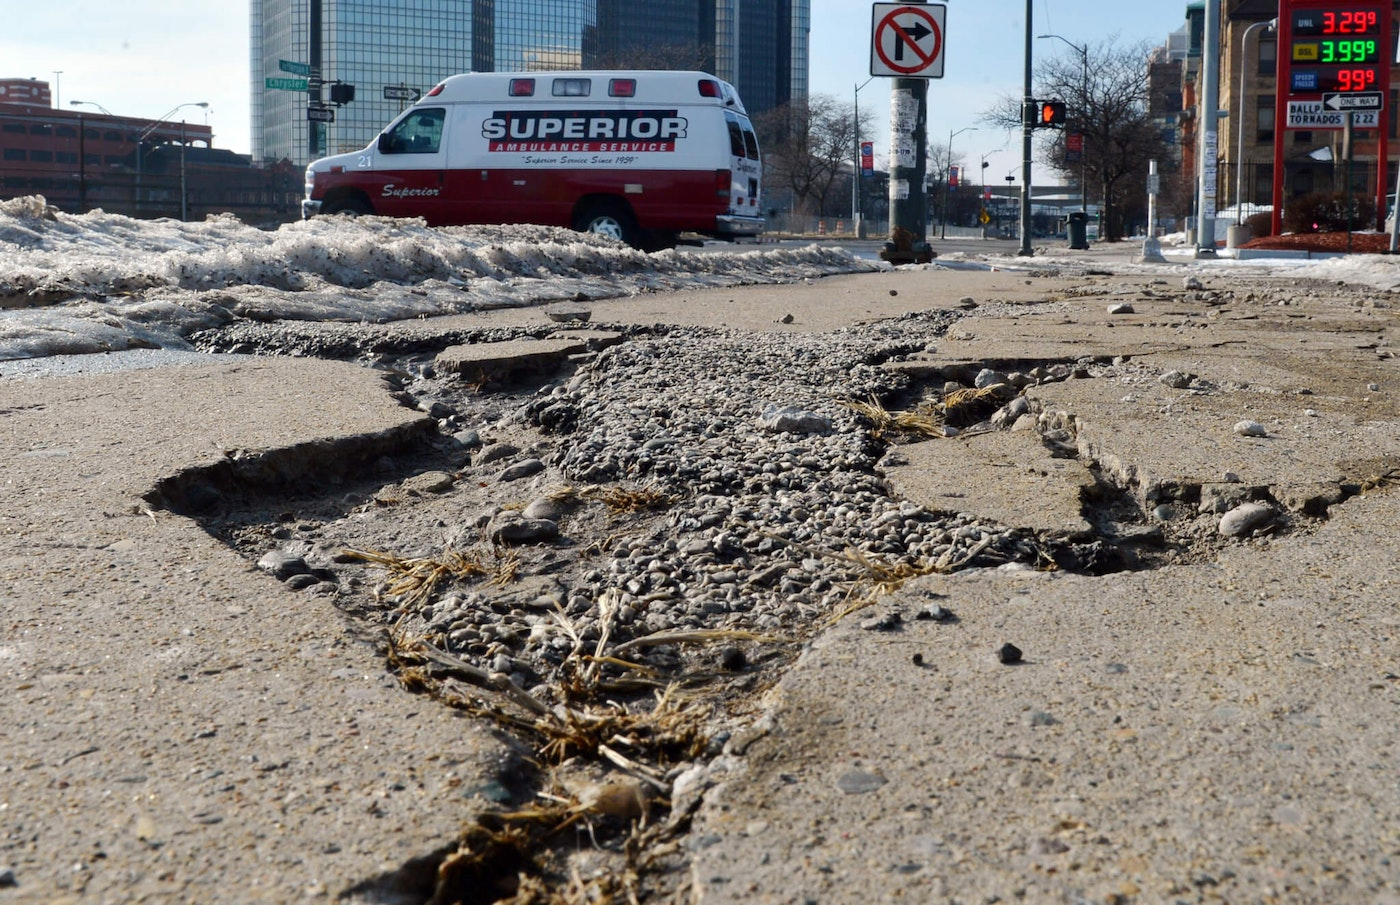 A destroyed street in Detroit, Michigan, USA, 12 January 2014. Detroit, the cradle of America_s automobile industry and once the nation_s fourth-most-populous city, filed for bankruptcy in summer 2013. Since then, the city leaders strive to keep the public life alive and at the same time reduce debt. The North American International Auto Show (NAIAS) is held in Detroit from 13  to 26 January. Photo: ULI DECK/dpa | usage worldwide